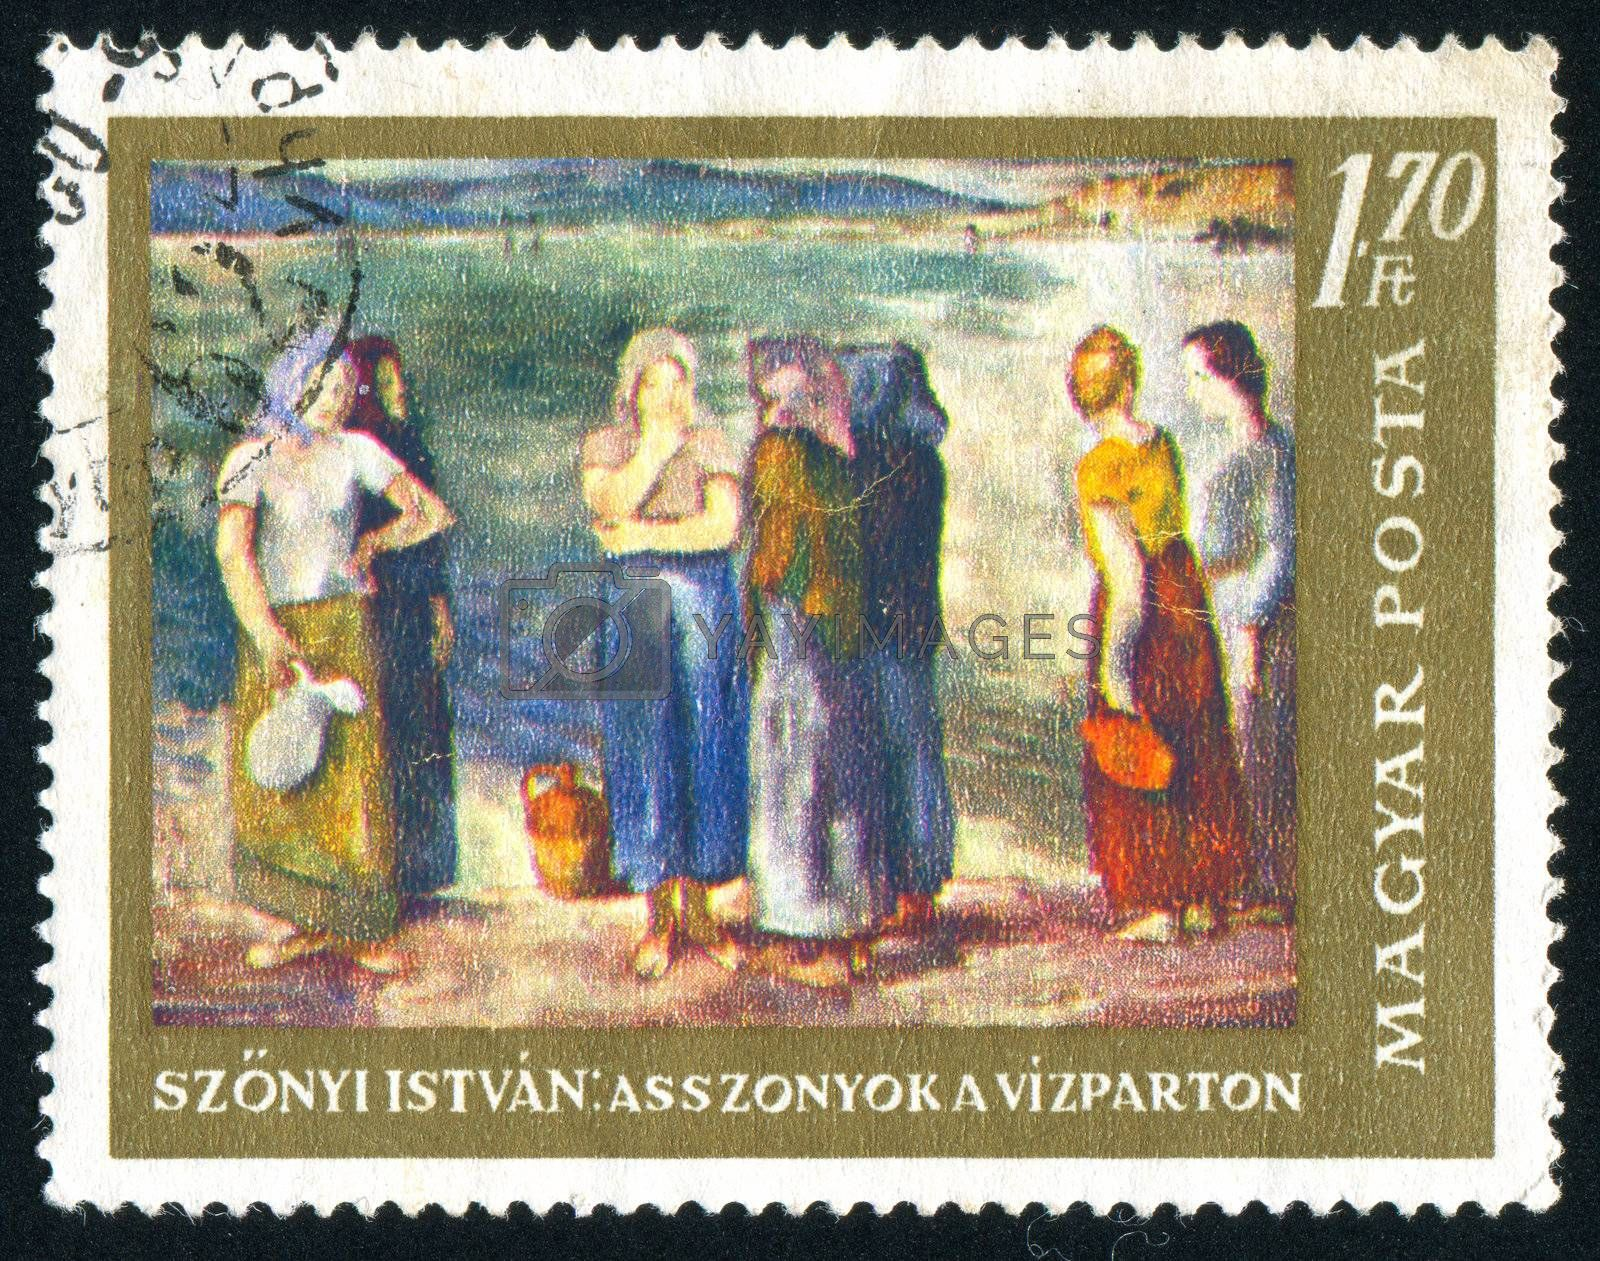 HUNGARY - CIRCA 1967: stamp printed by Hungary, shows Women at the River Bank by Istvan Szonyi, circa 1967